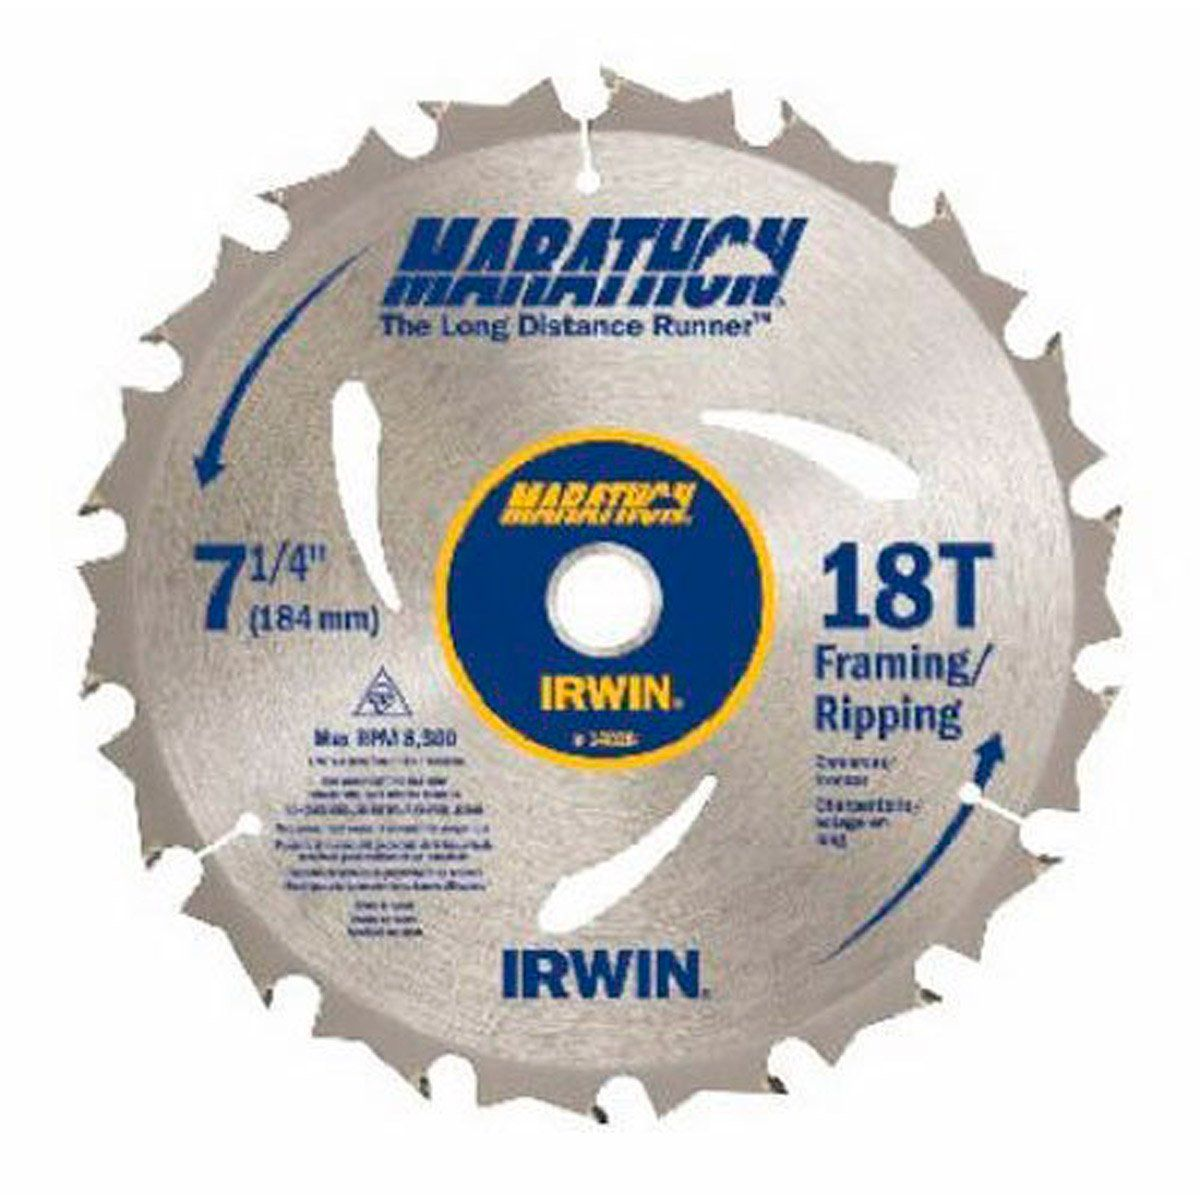 5 Essential Circular Saw Blades For Your Home Workshop Table Saw Blades Circular Saw Blades Best Circular Saw